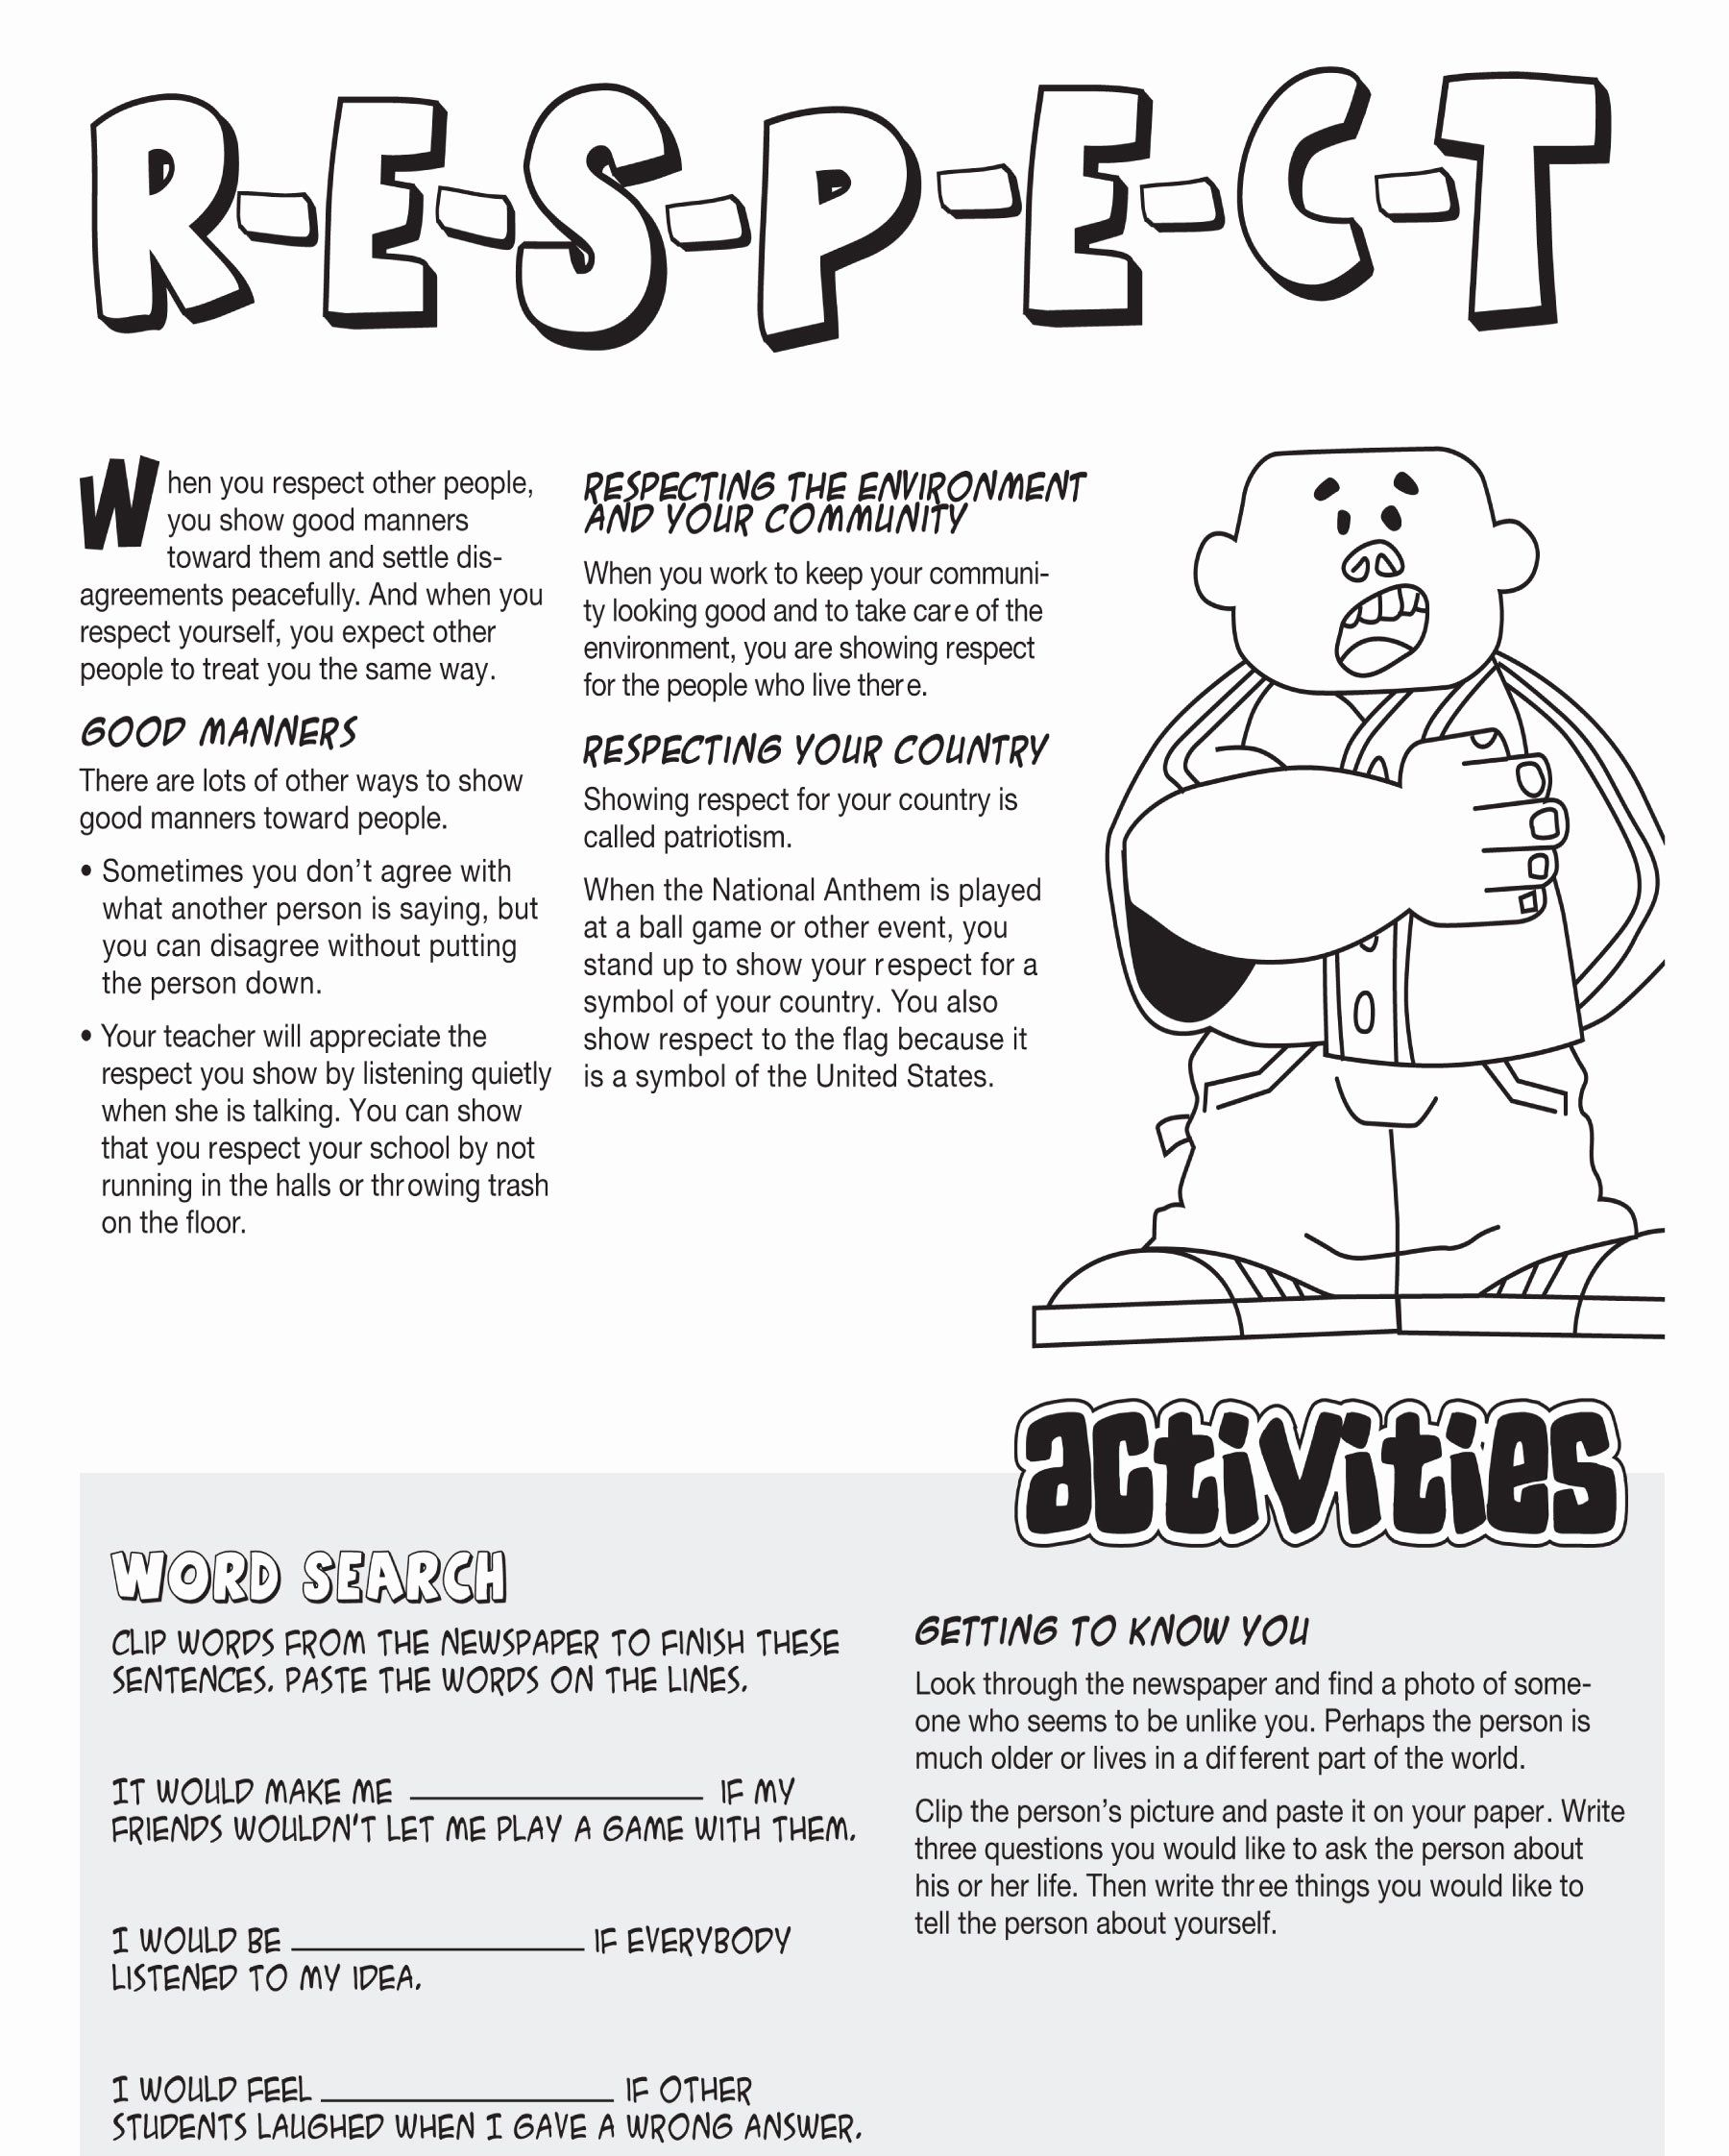 Respecting Others Property Worksheet New Moral And Values